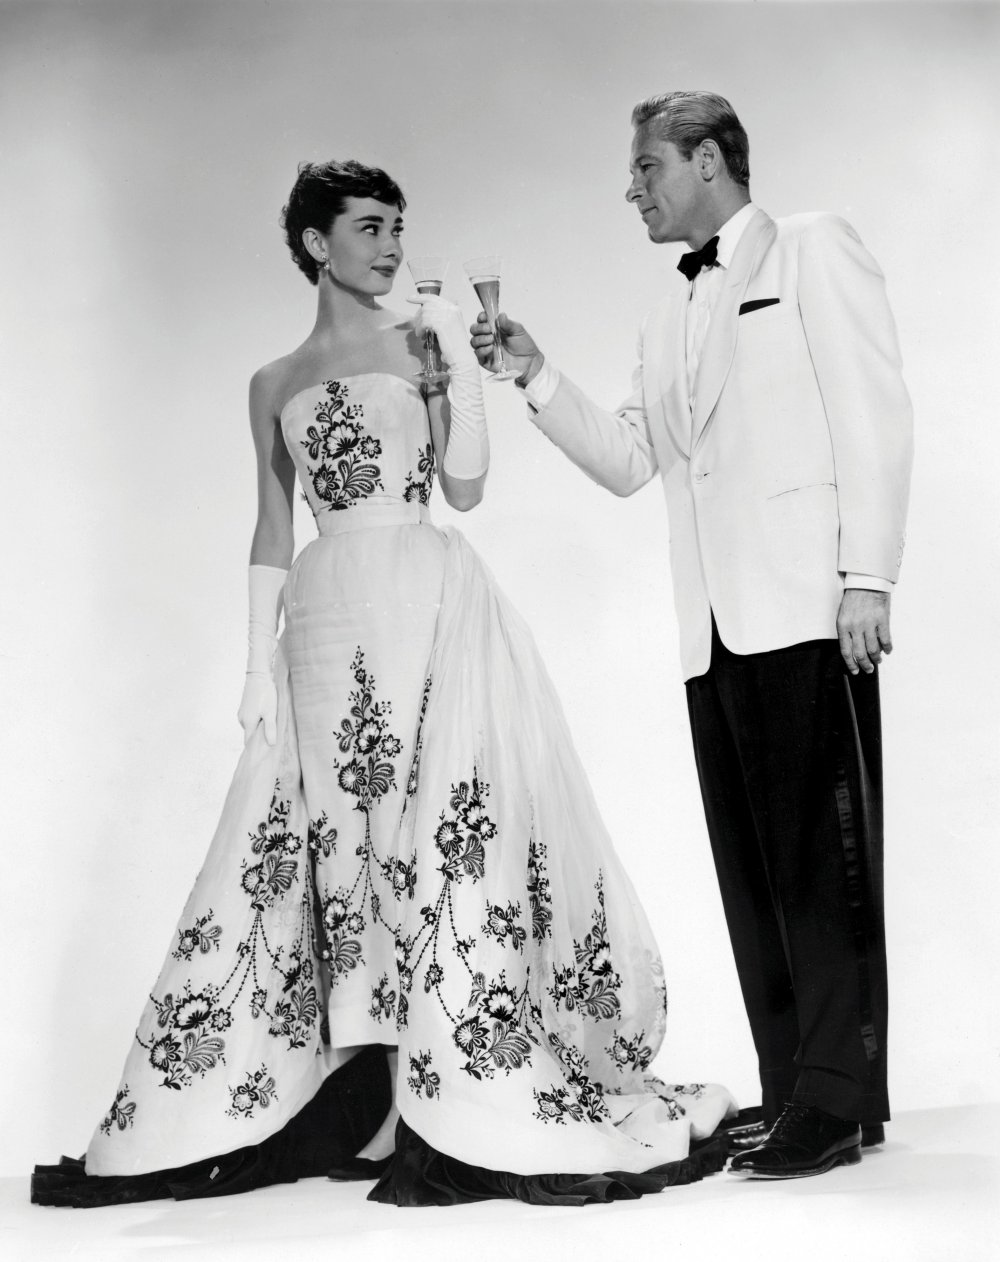 sabrina-1954-001-hepburn-and-holden-raising-toast-00m-wod